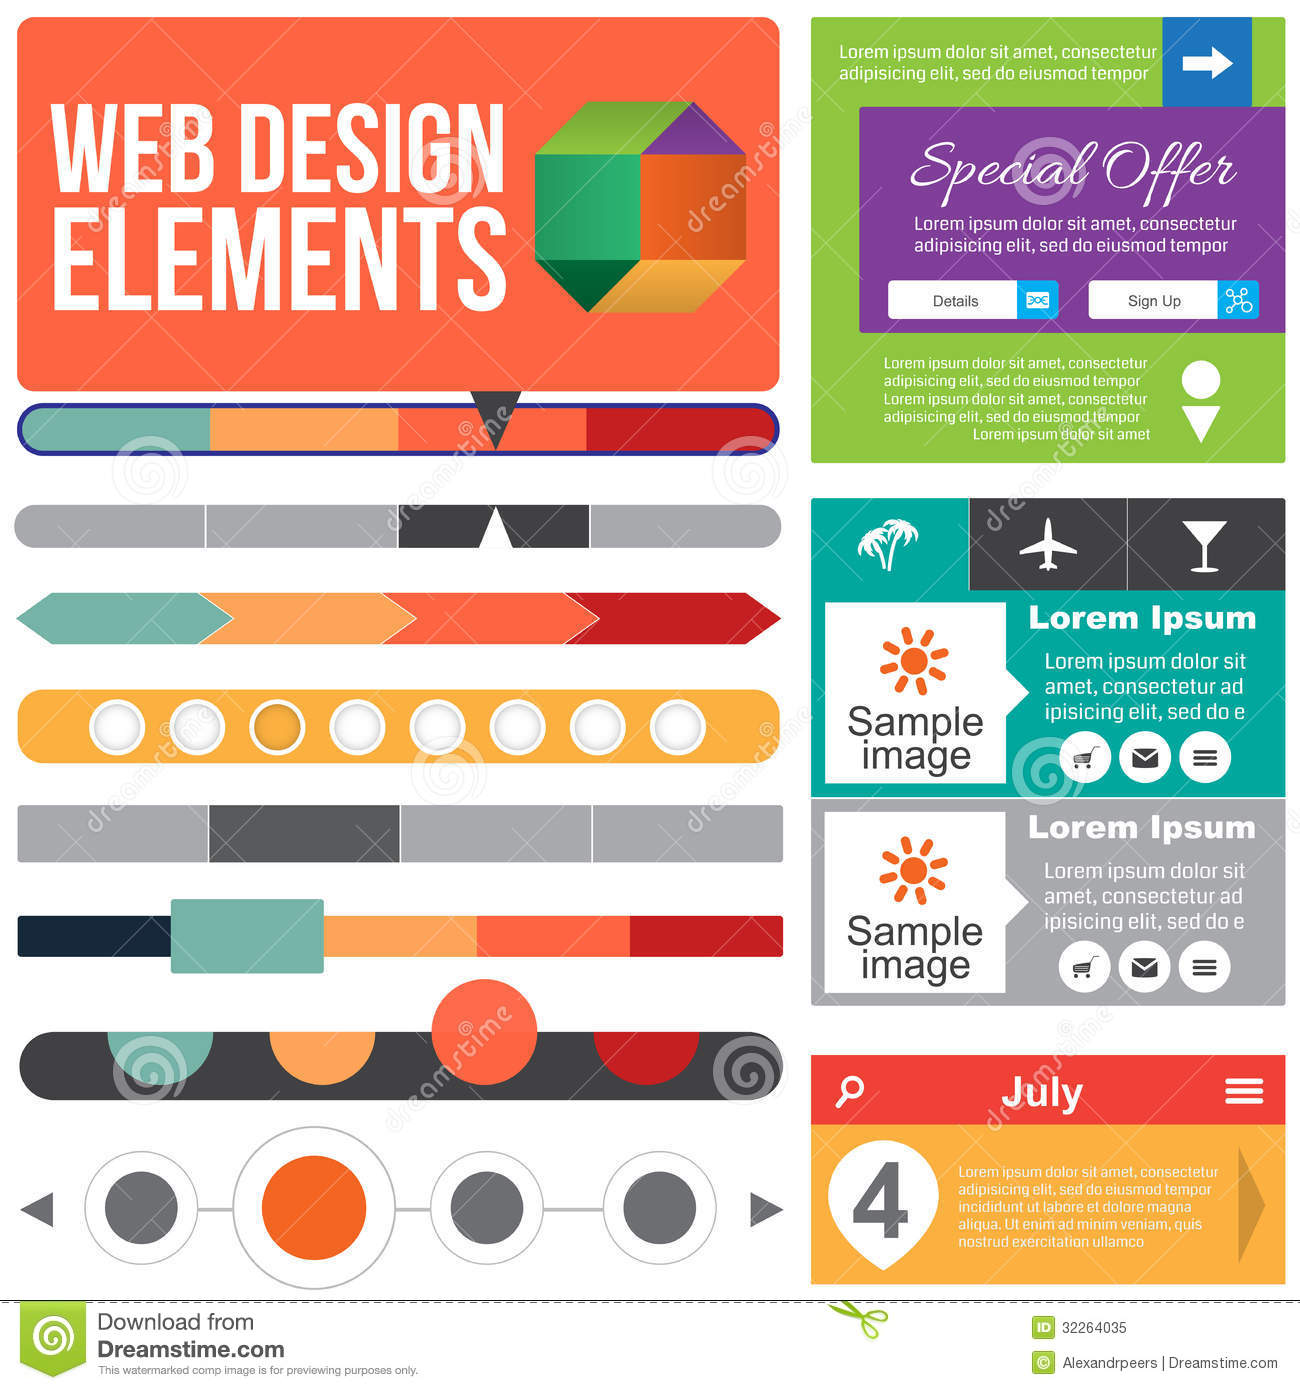 Elements By Design : Flat web design elements royalty free stock photo image